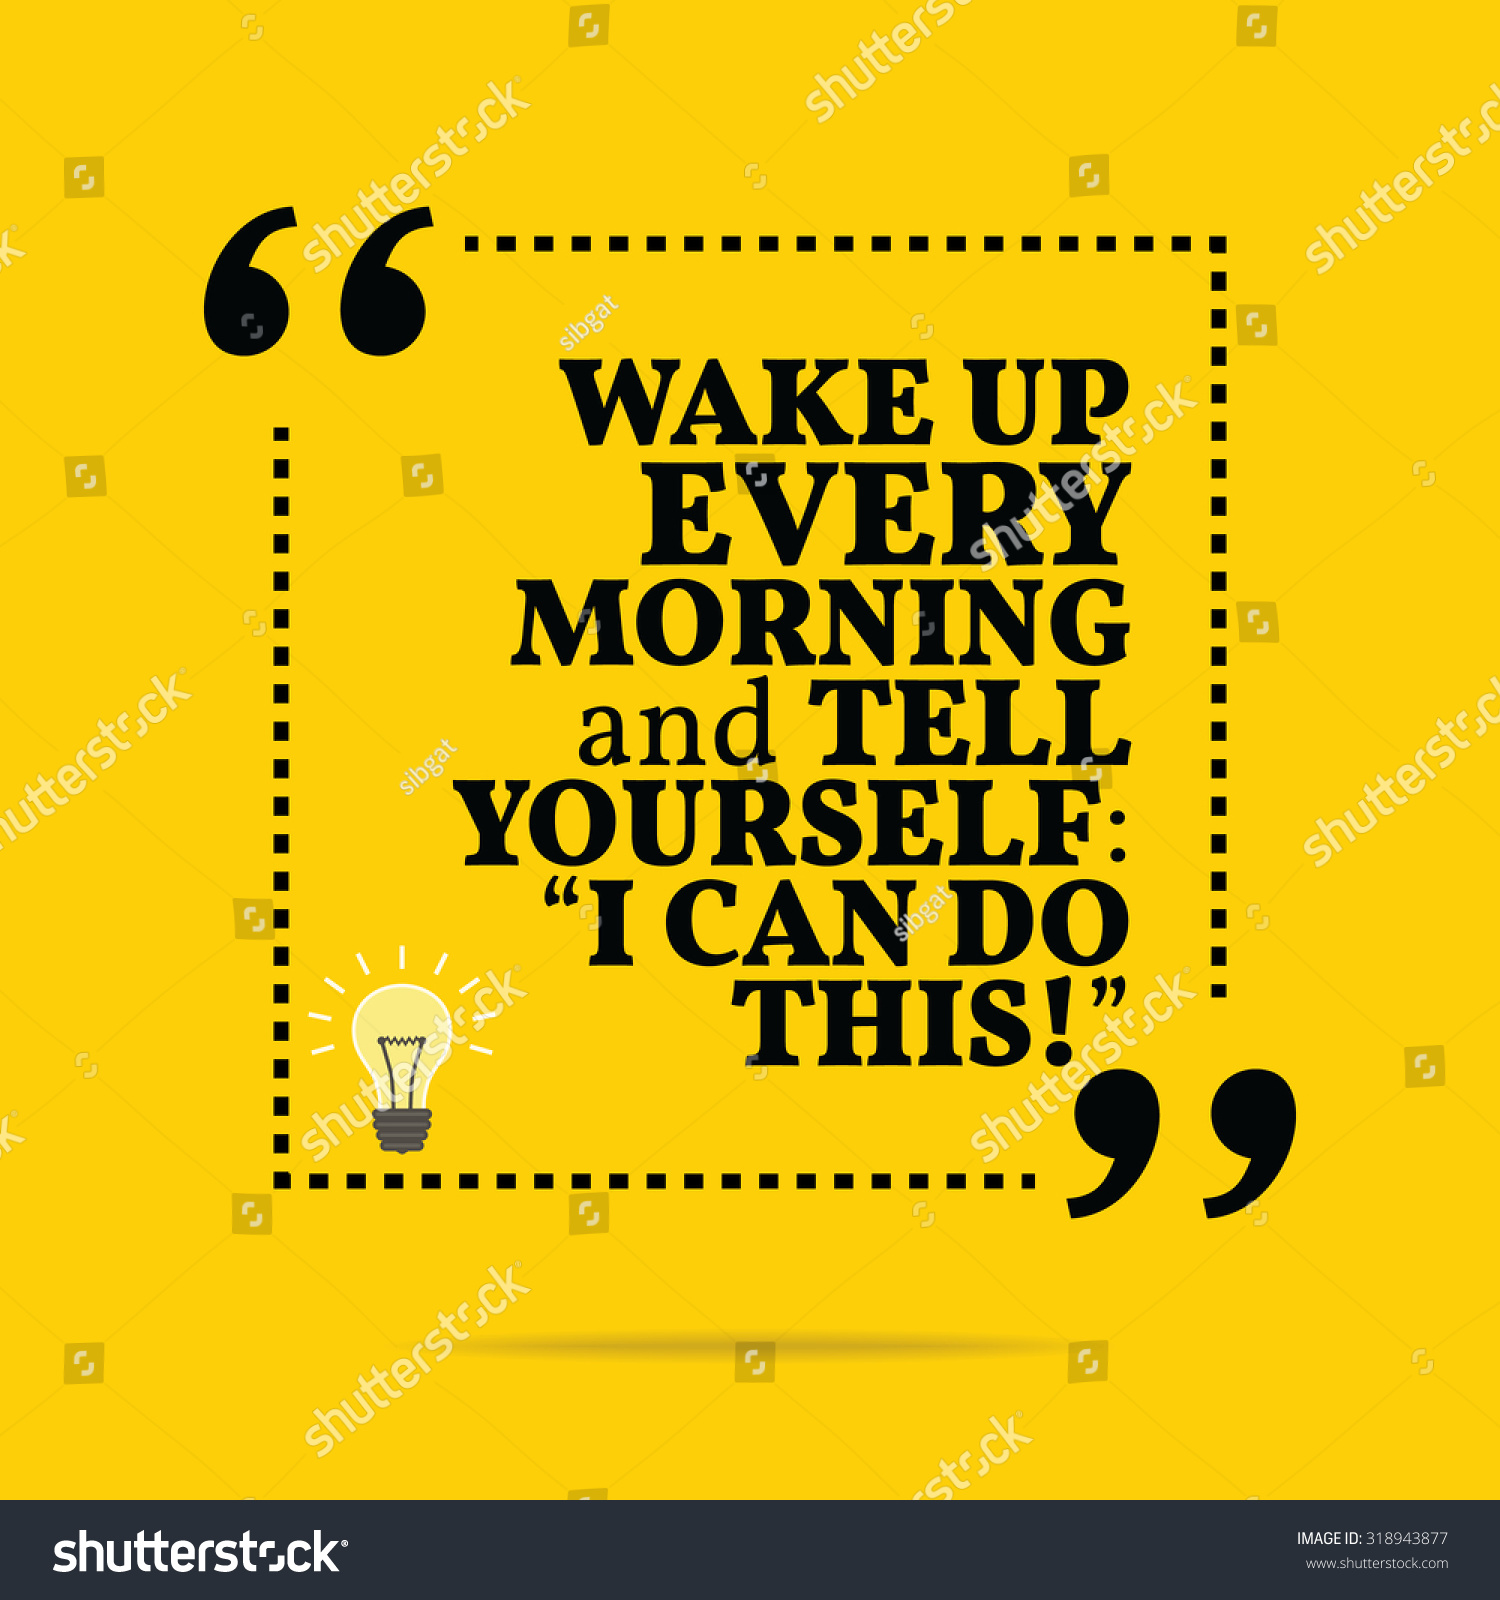 inspirational motivational quote wake up every morning